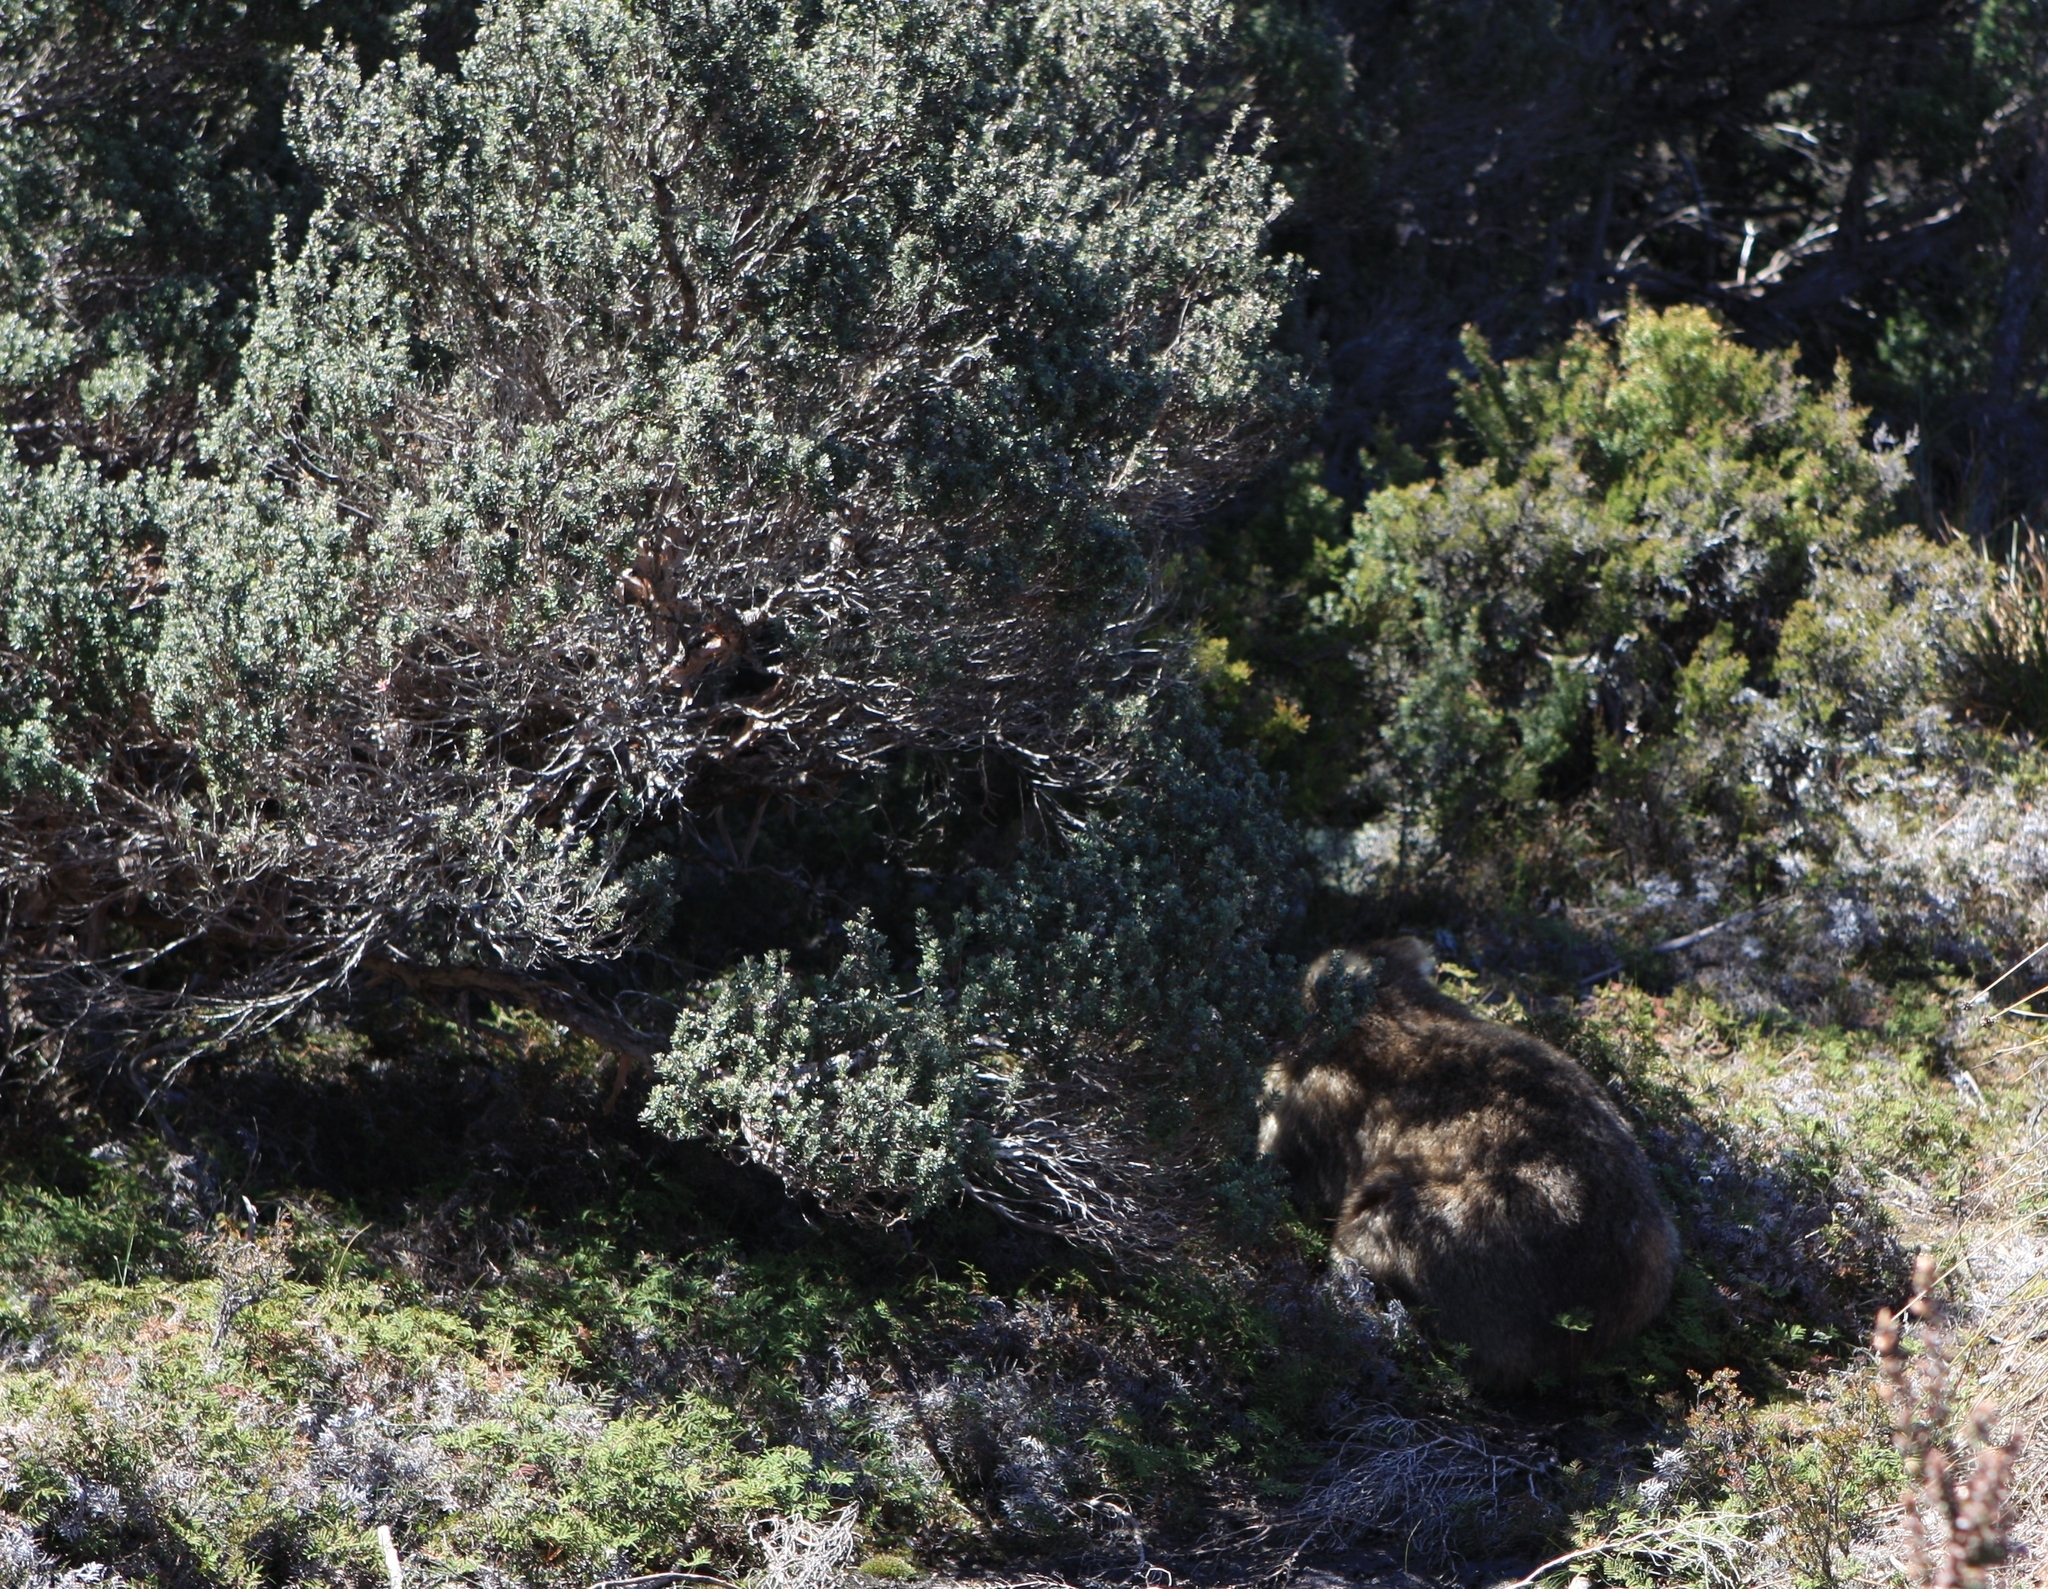 Image of Coarse-haired Wombat